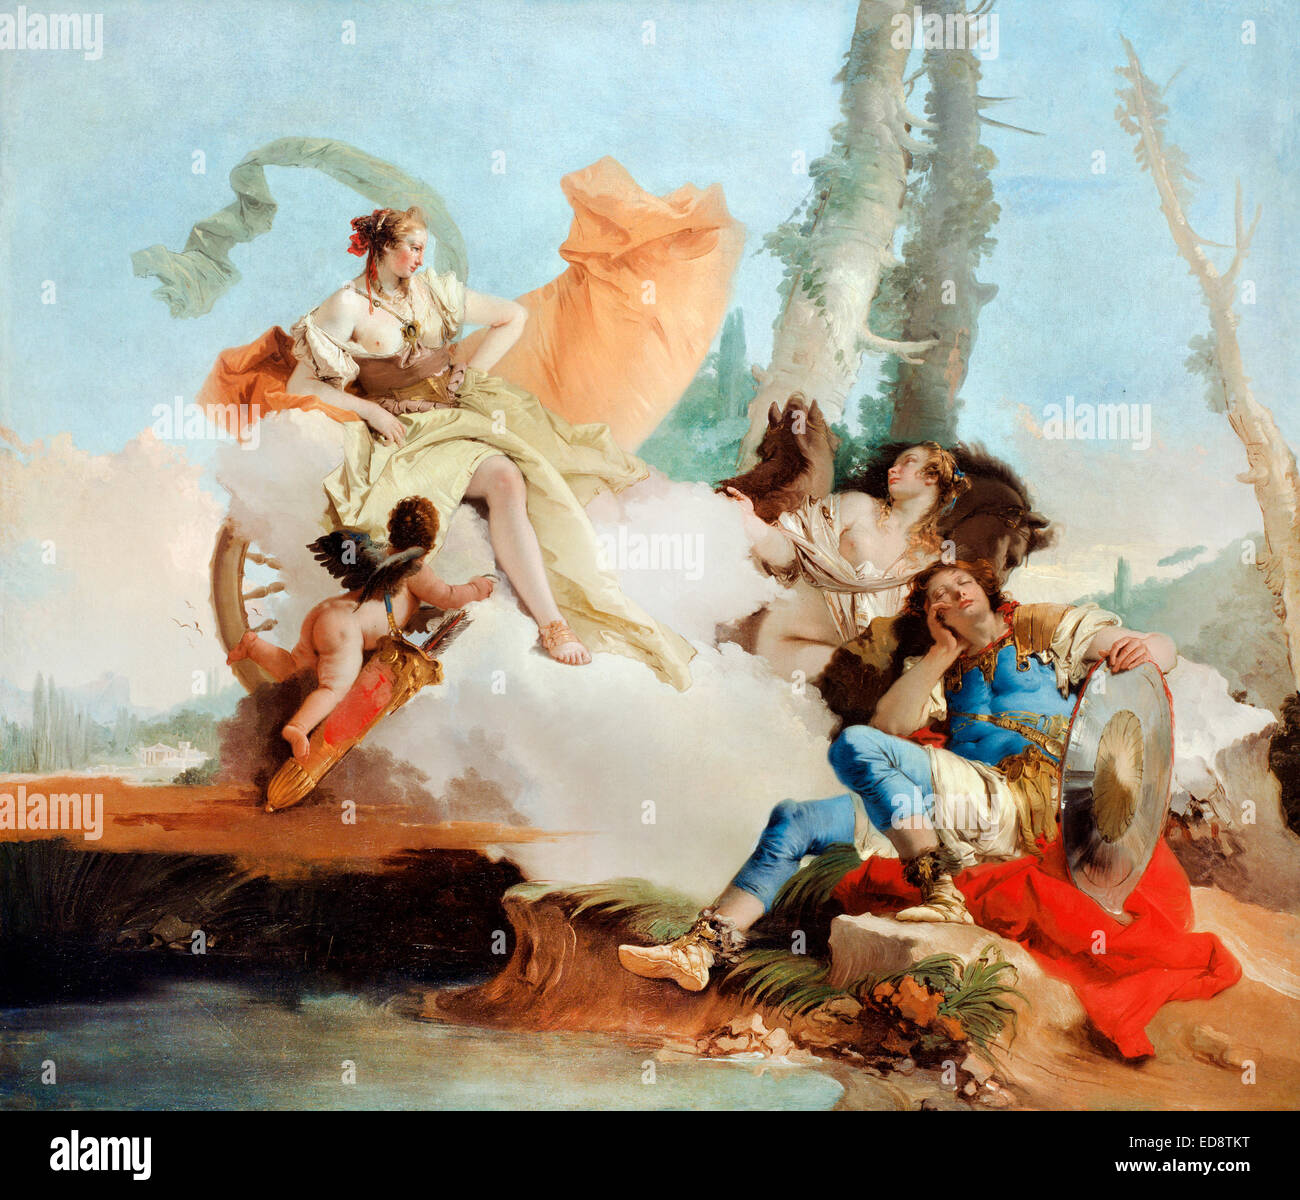 Giovanni Battista Tiepolo, Rinaldo verzaubert von 1742 bis 1745 Armida Öl auf Leinwand. Art Institute of Chicago, Stockbild